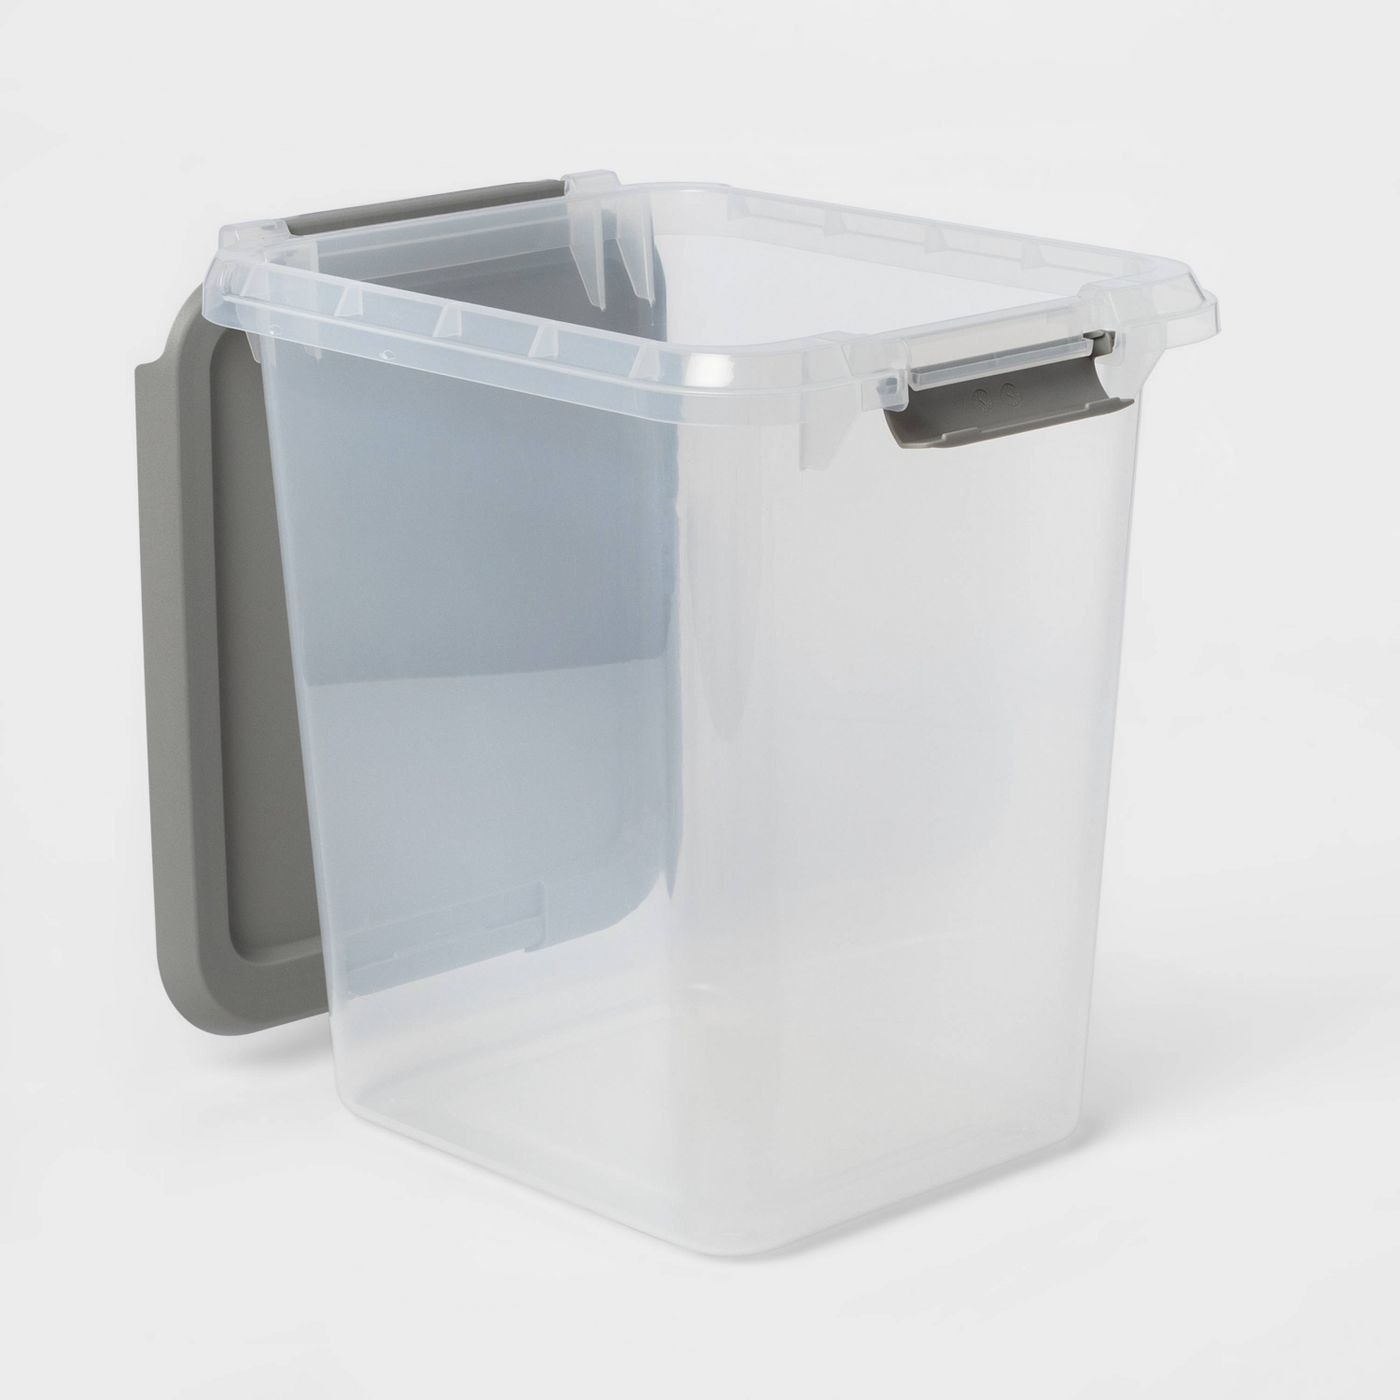 Plastic container with gray lid